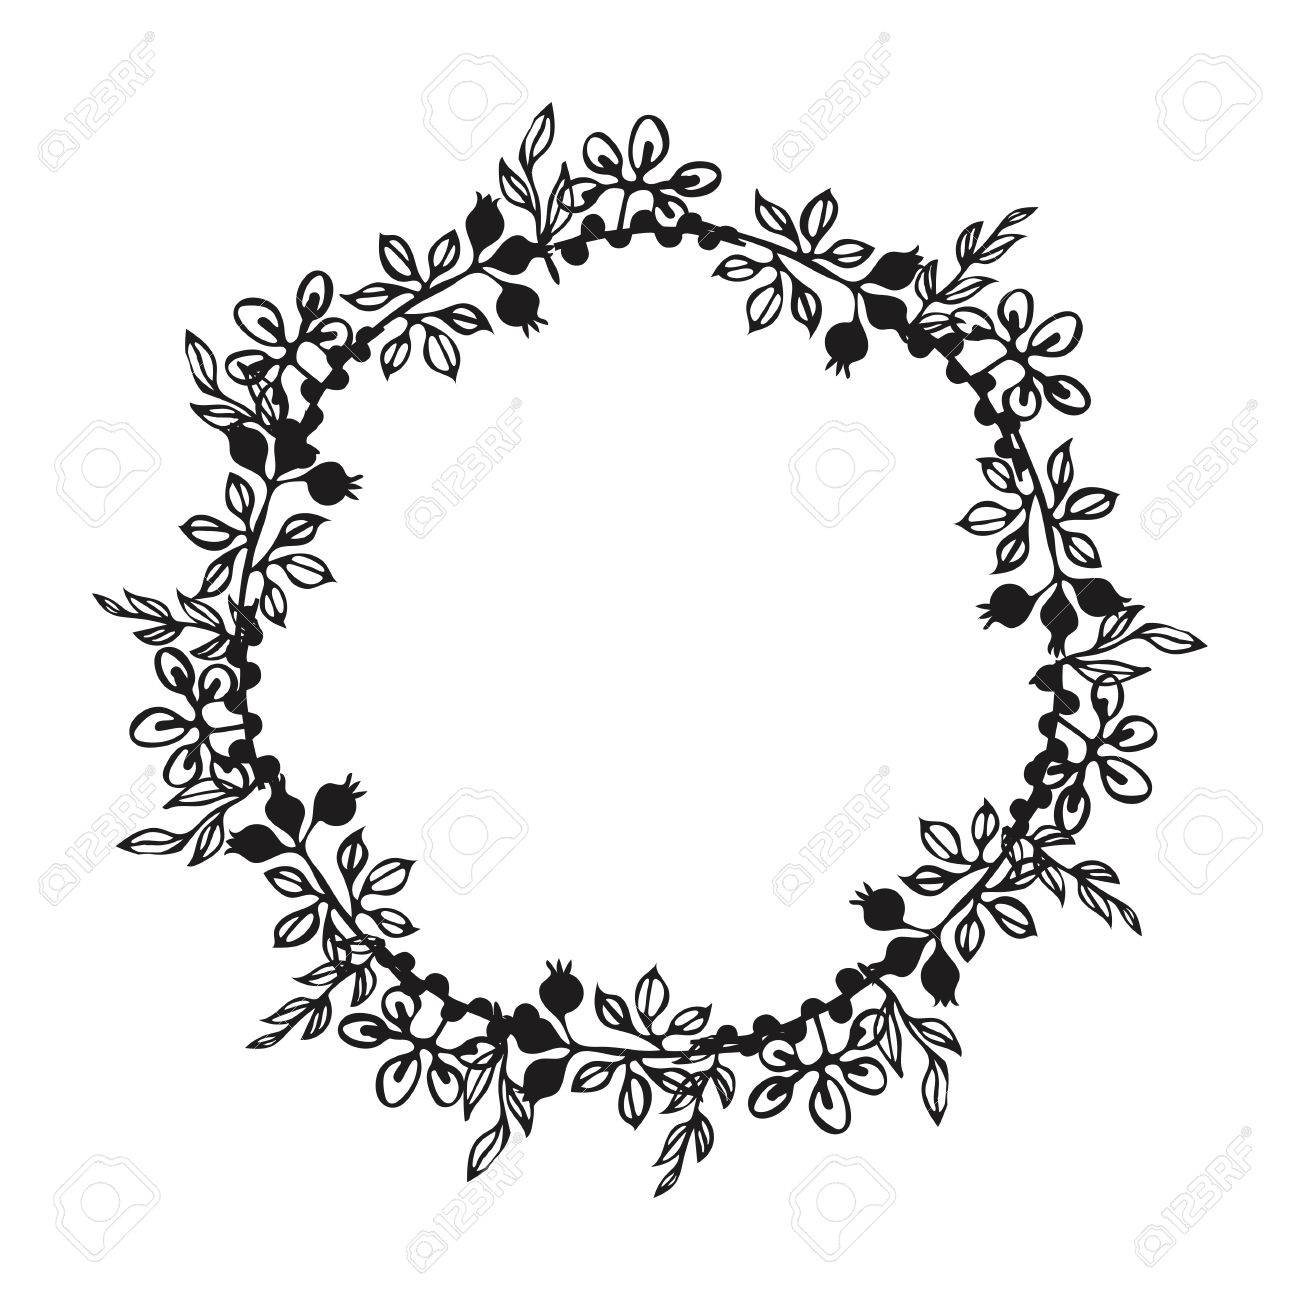 Hand Drawn Wreath Floral Design Elements For Invitations Greeting